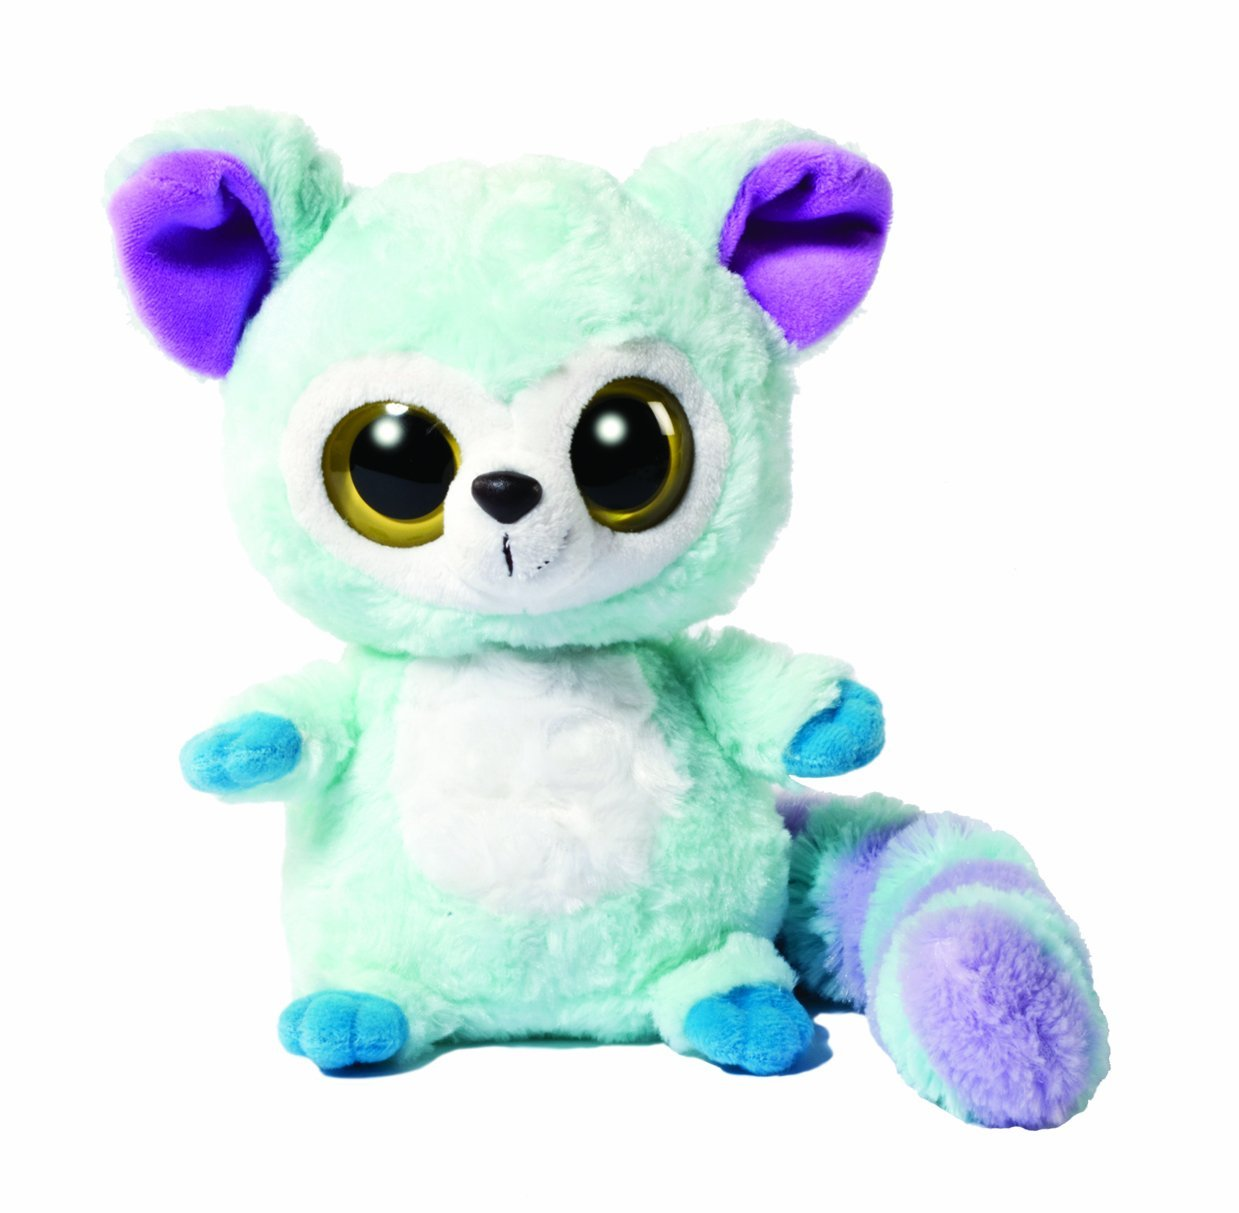 YooHoo & Friends - Tarsier, peluche, 18 cm (Aurora World 12980)